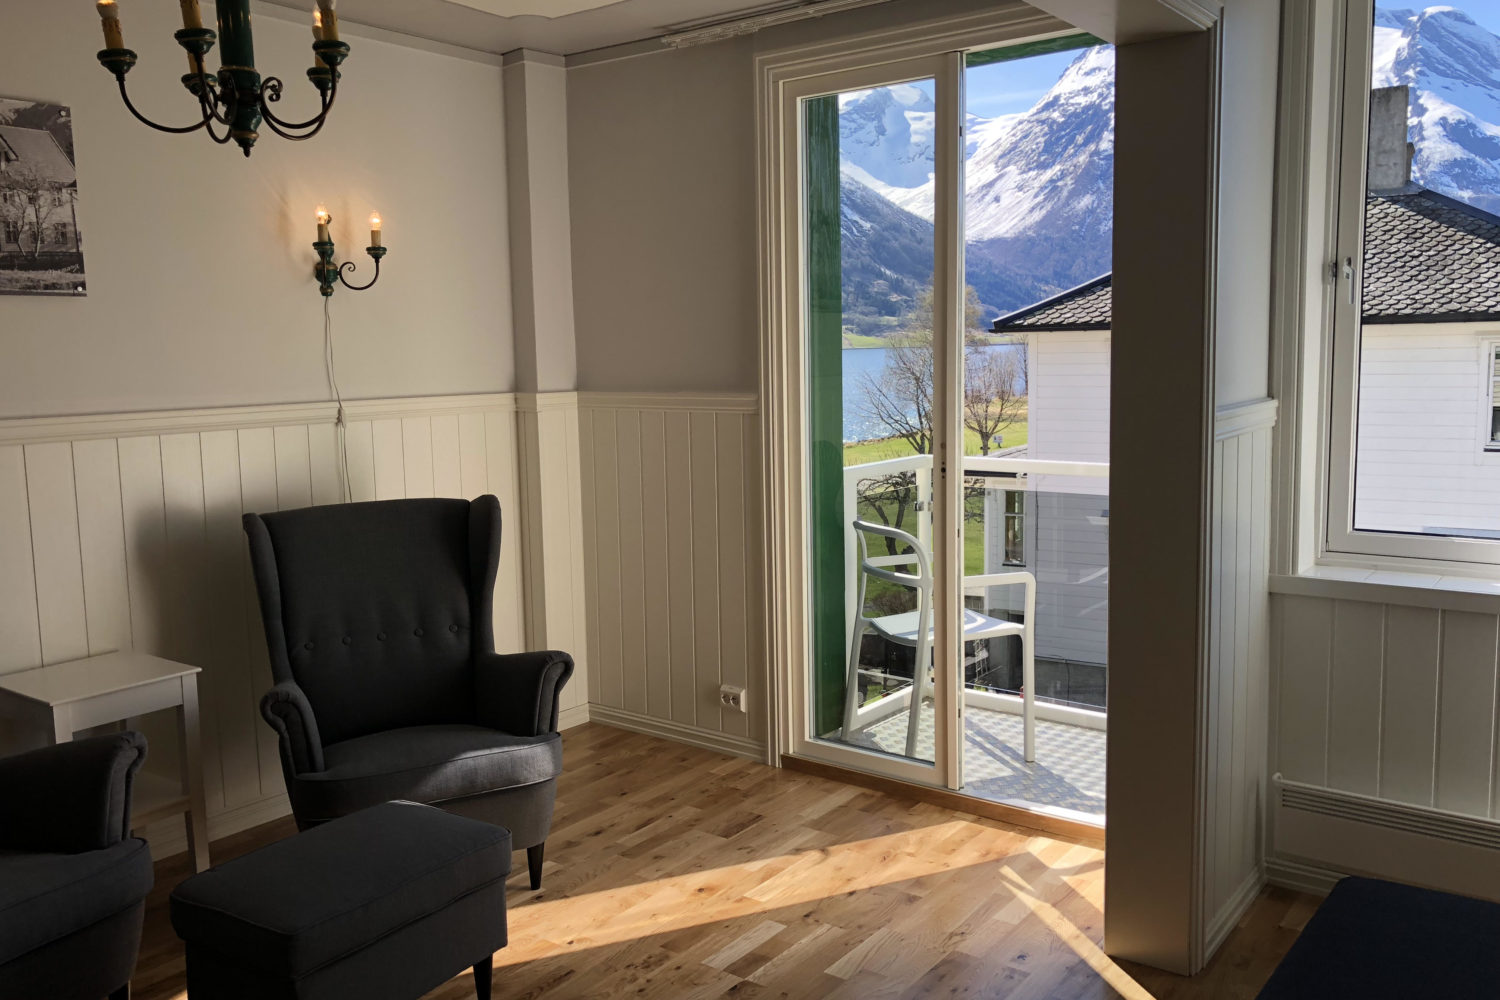 Hjelle Hotel room view in Stryn is gorgeous!